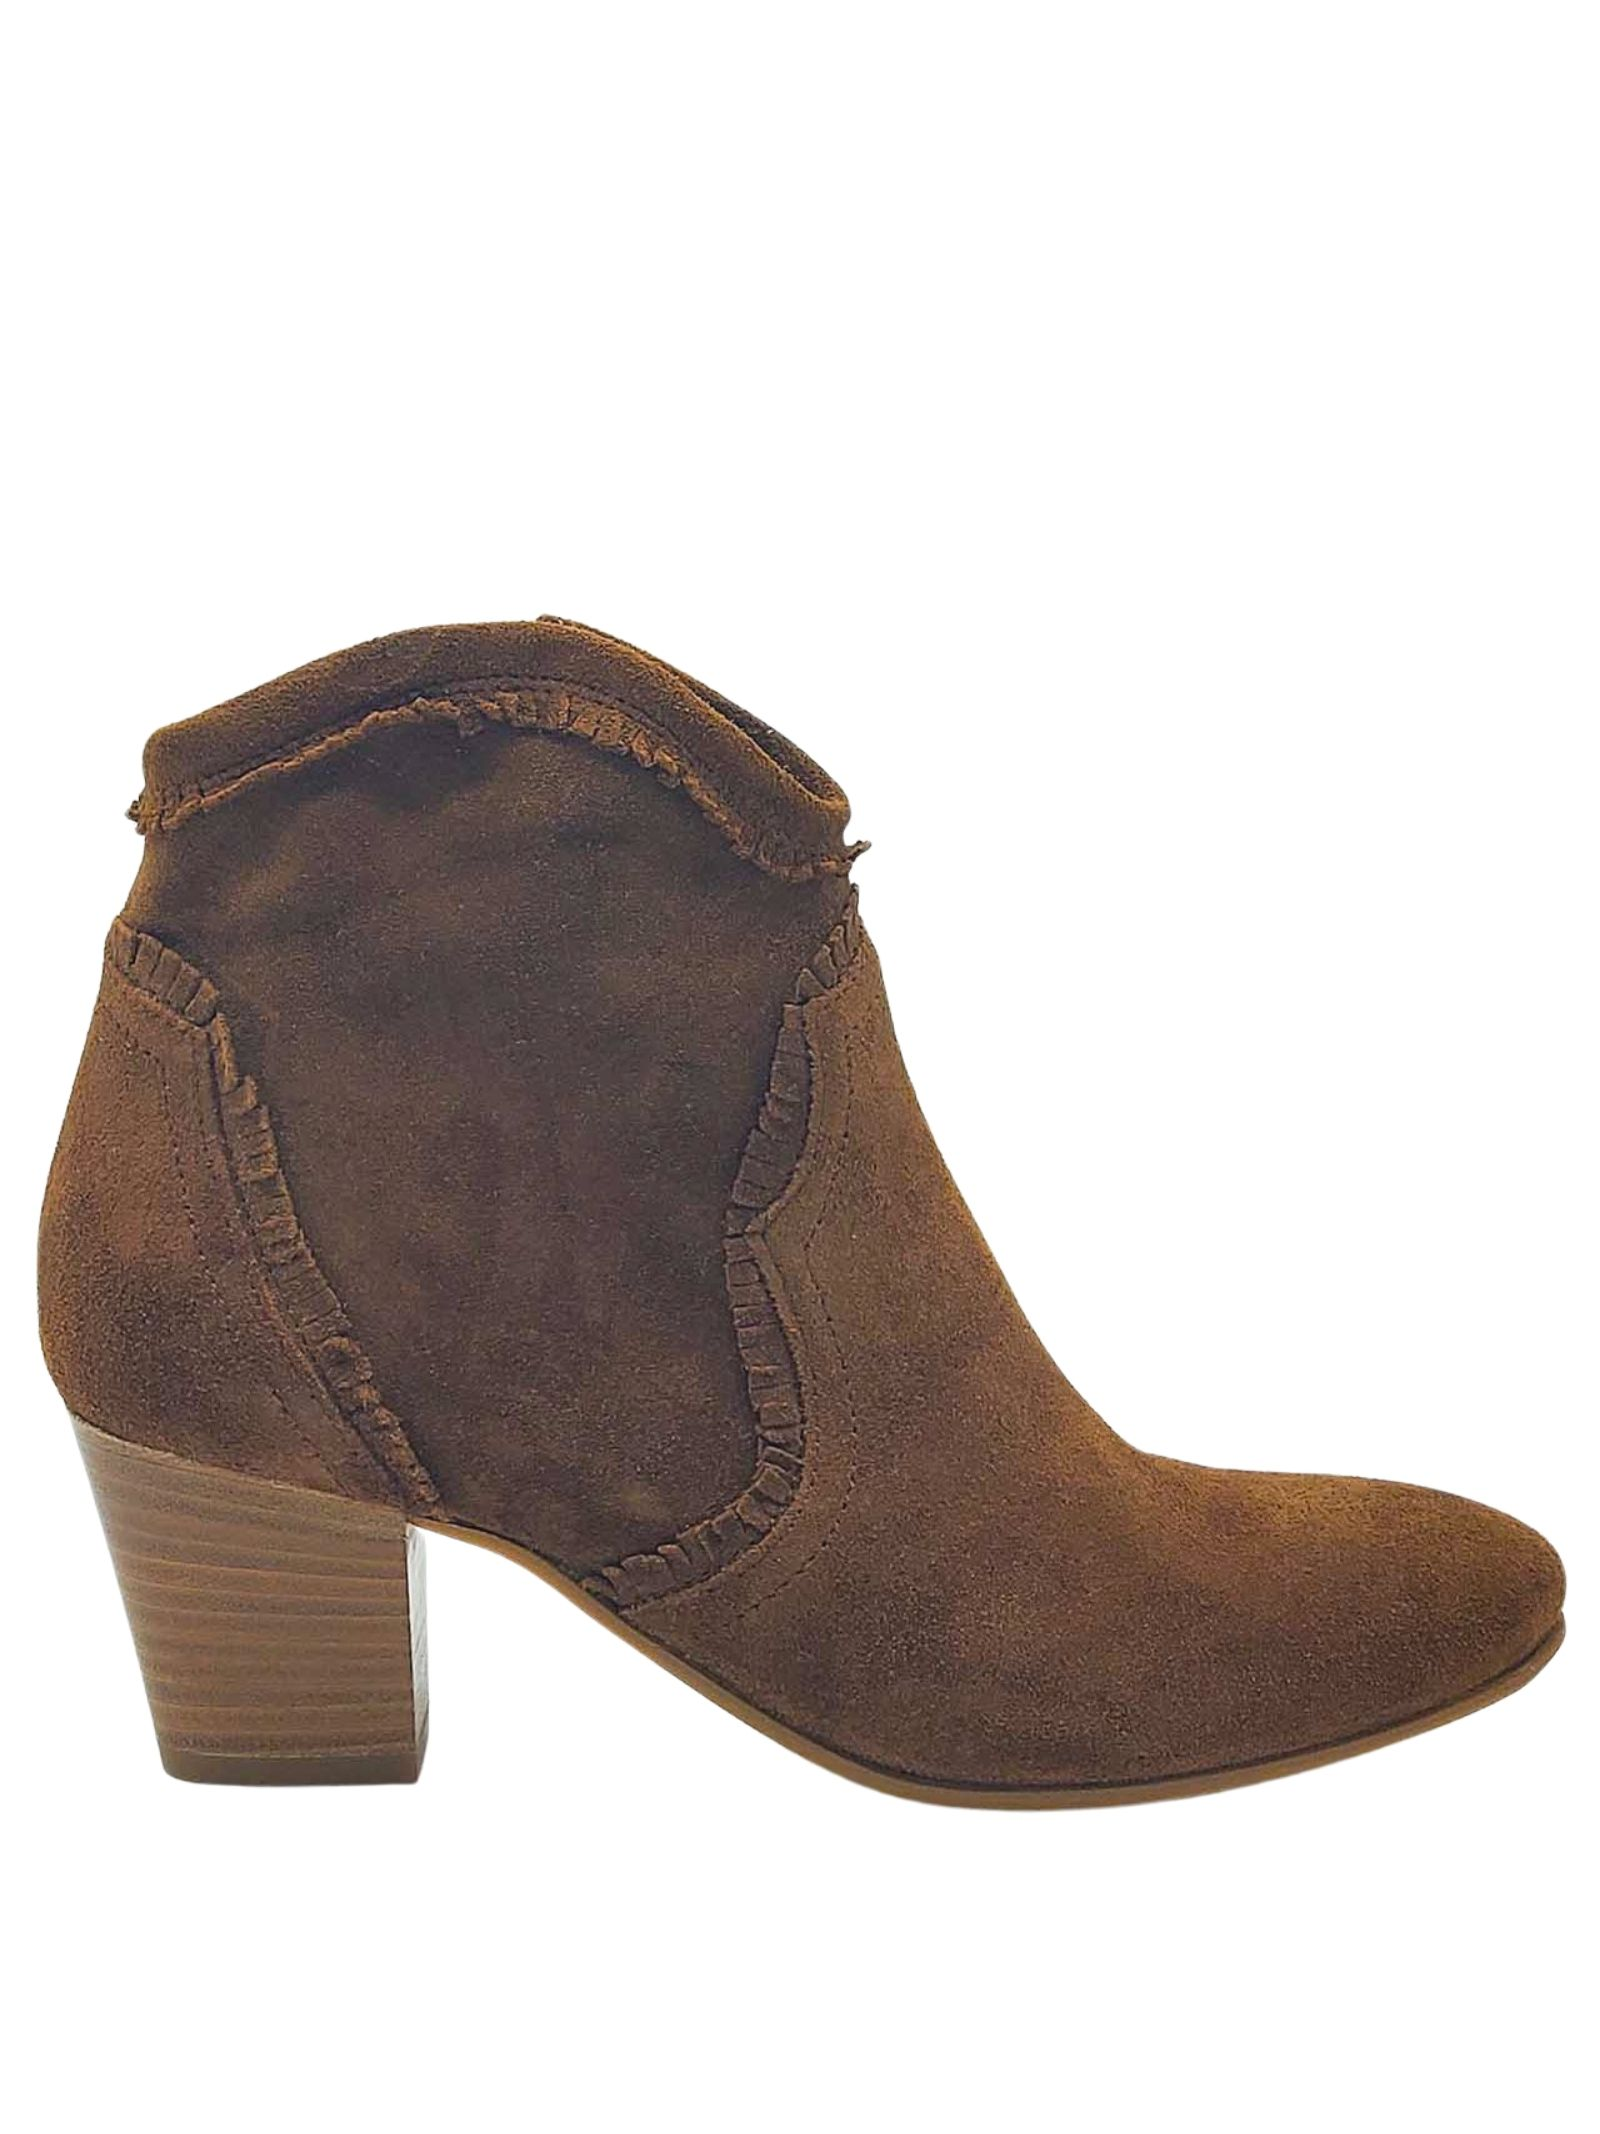 Women's Shoes Brown Suede Ankle Boots Round Toe and Heel 50 Lamica | Ankle Boots | LESMA012